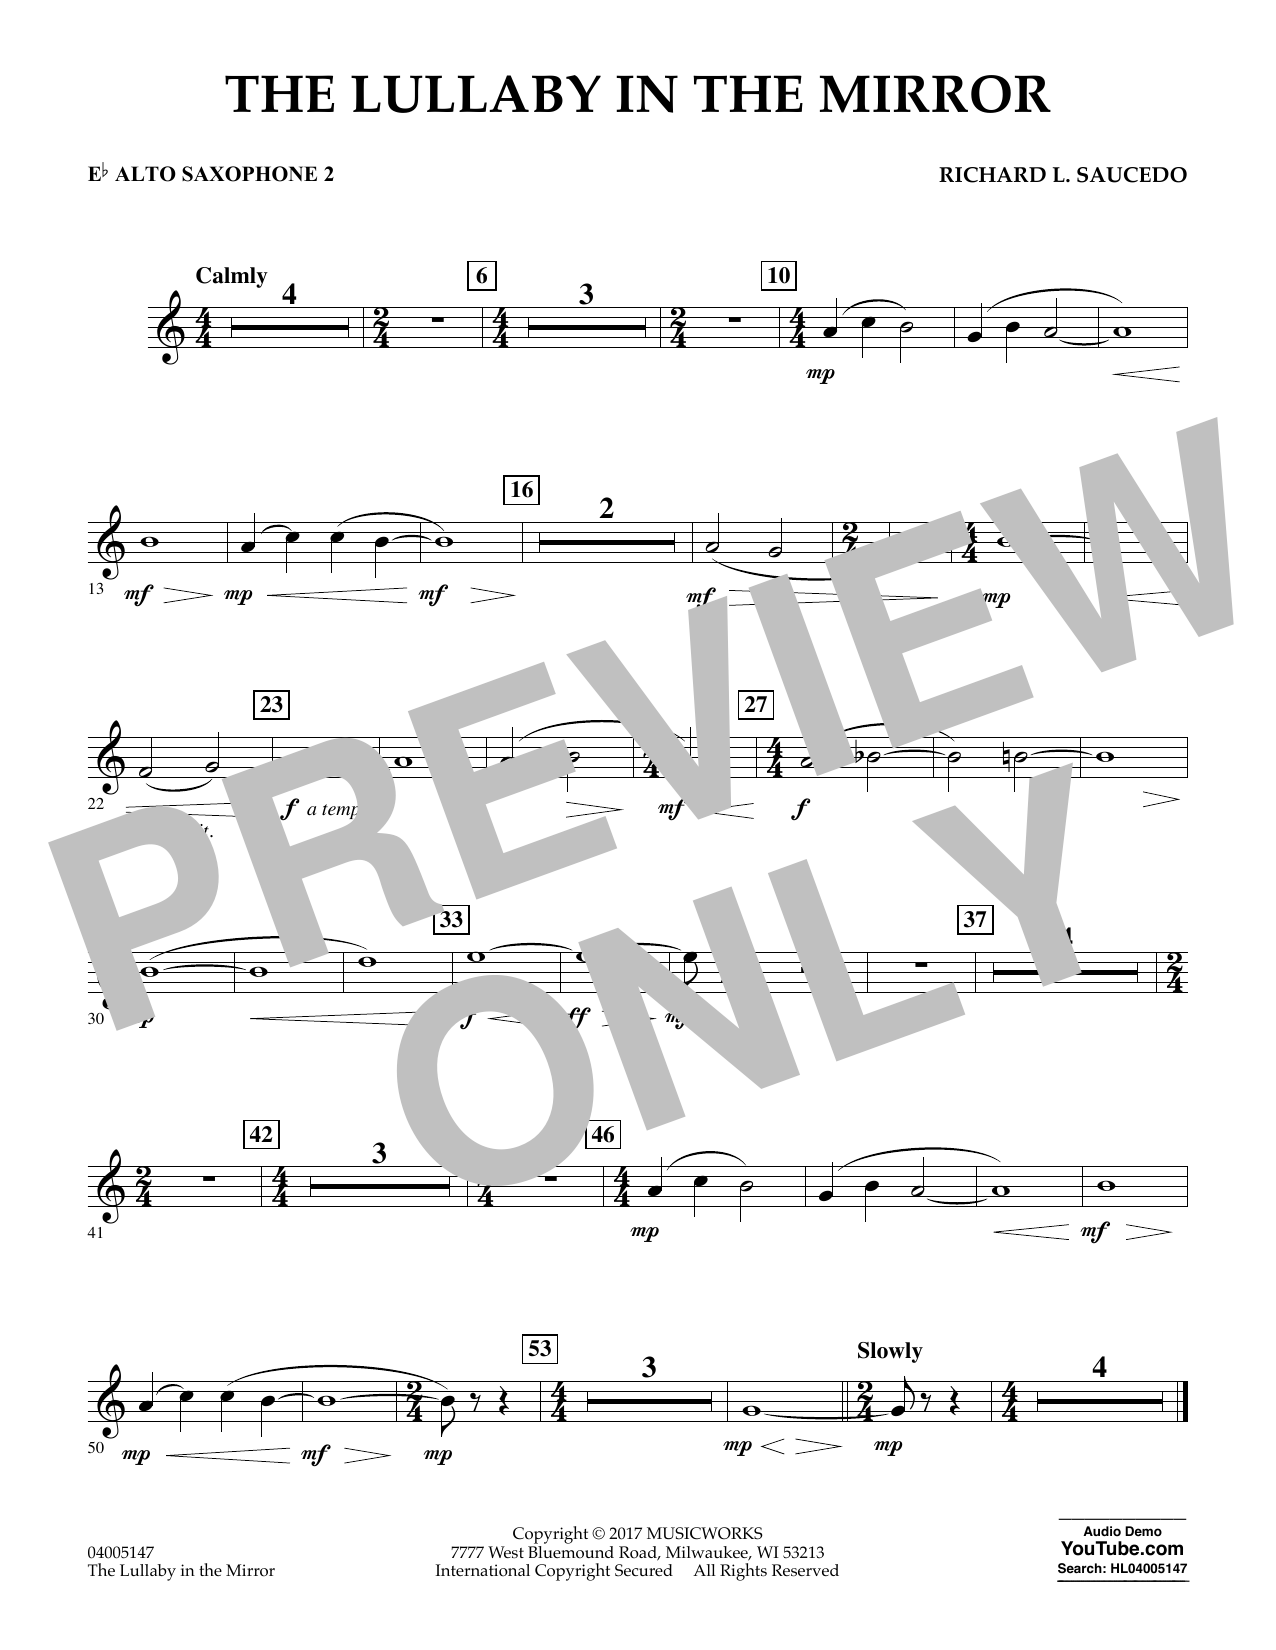 Richard L. Saucedo The Lullaby in the Mirror - Eb Alto Saxophone 2 sheet music notes and chords. Download Printable PDF.